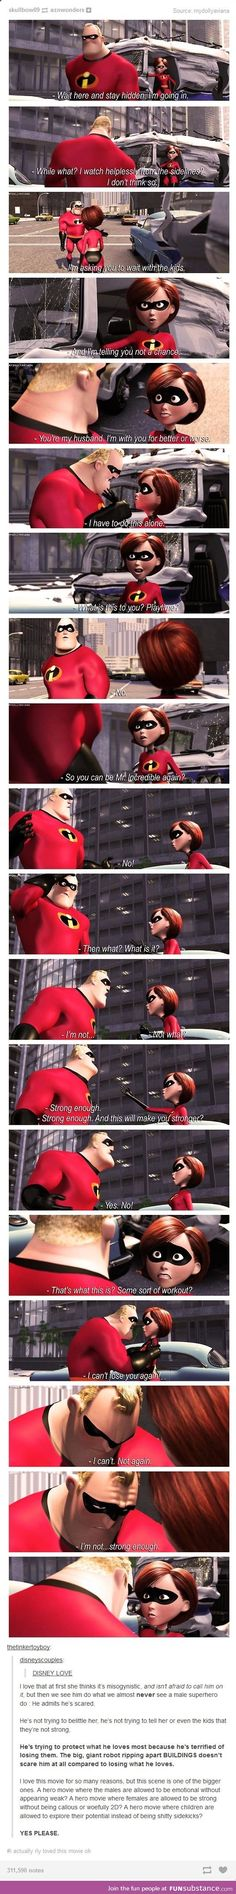 Incredible movie (Pixar, know i put it in Disney section---k)